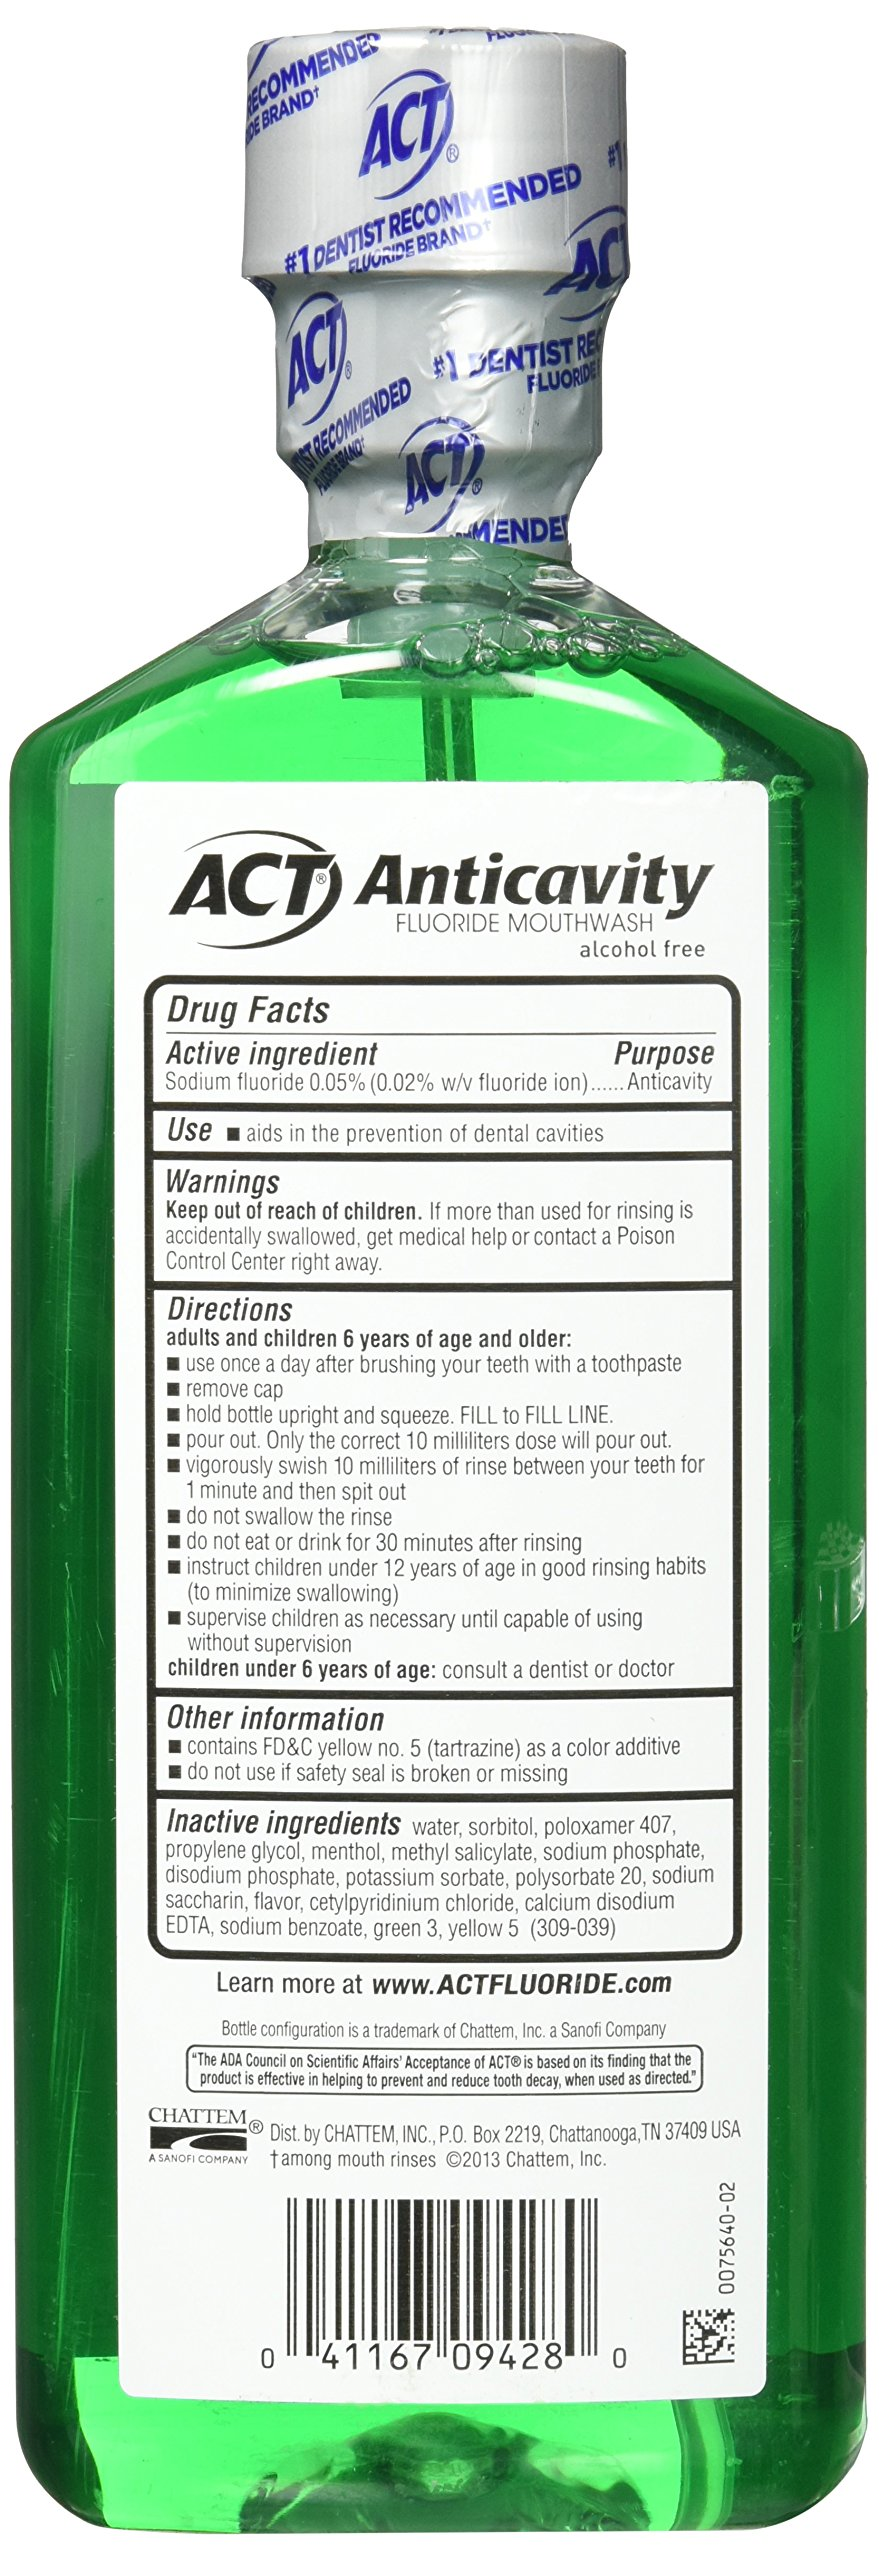 ACT Alcohol Free Anticavity Fluoride Rinse, Mint - 18 oz - 2 pk by ACT (Image #5)